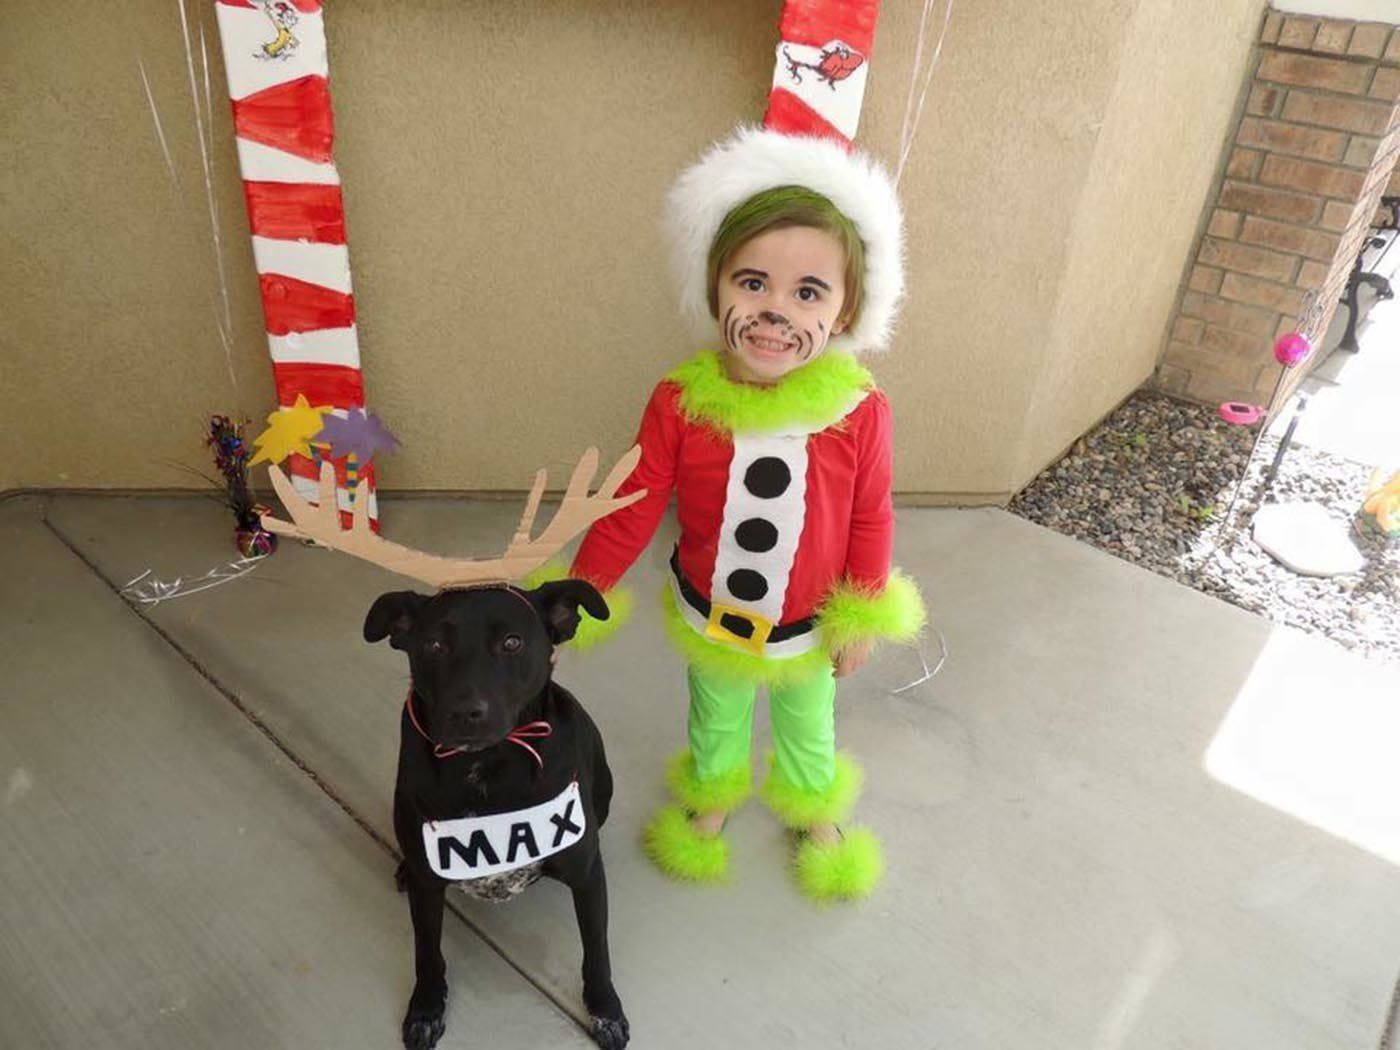 sc 1 st  HuffPost & 30 Perfect Halloween Costumes For Kid And Dog BFFs | HuffPost